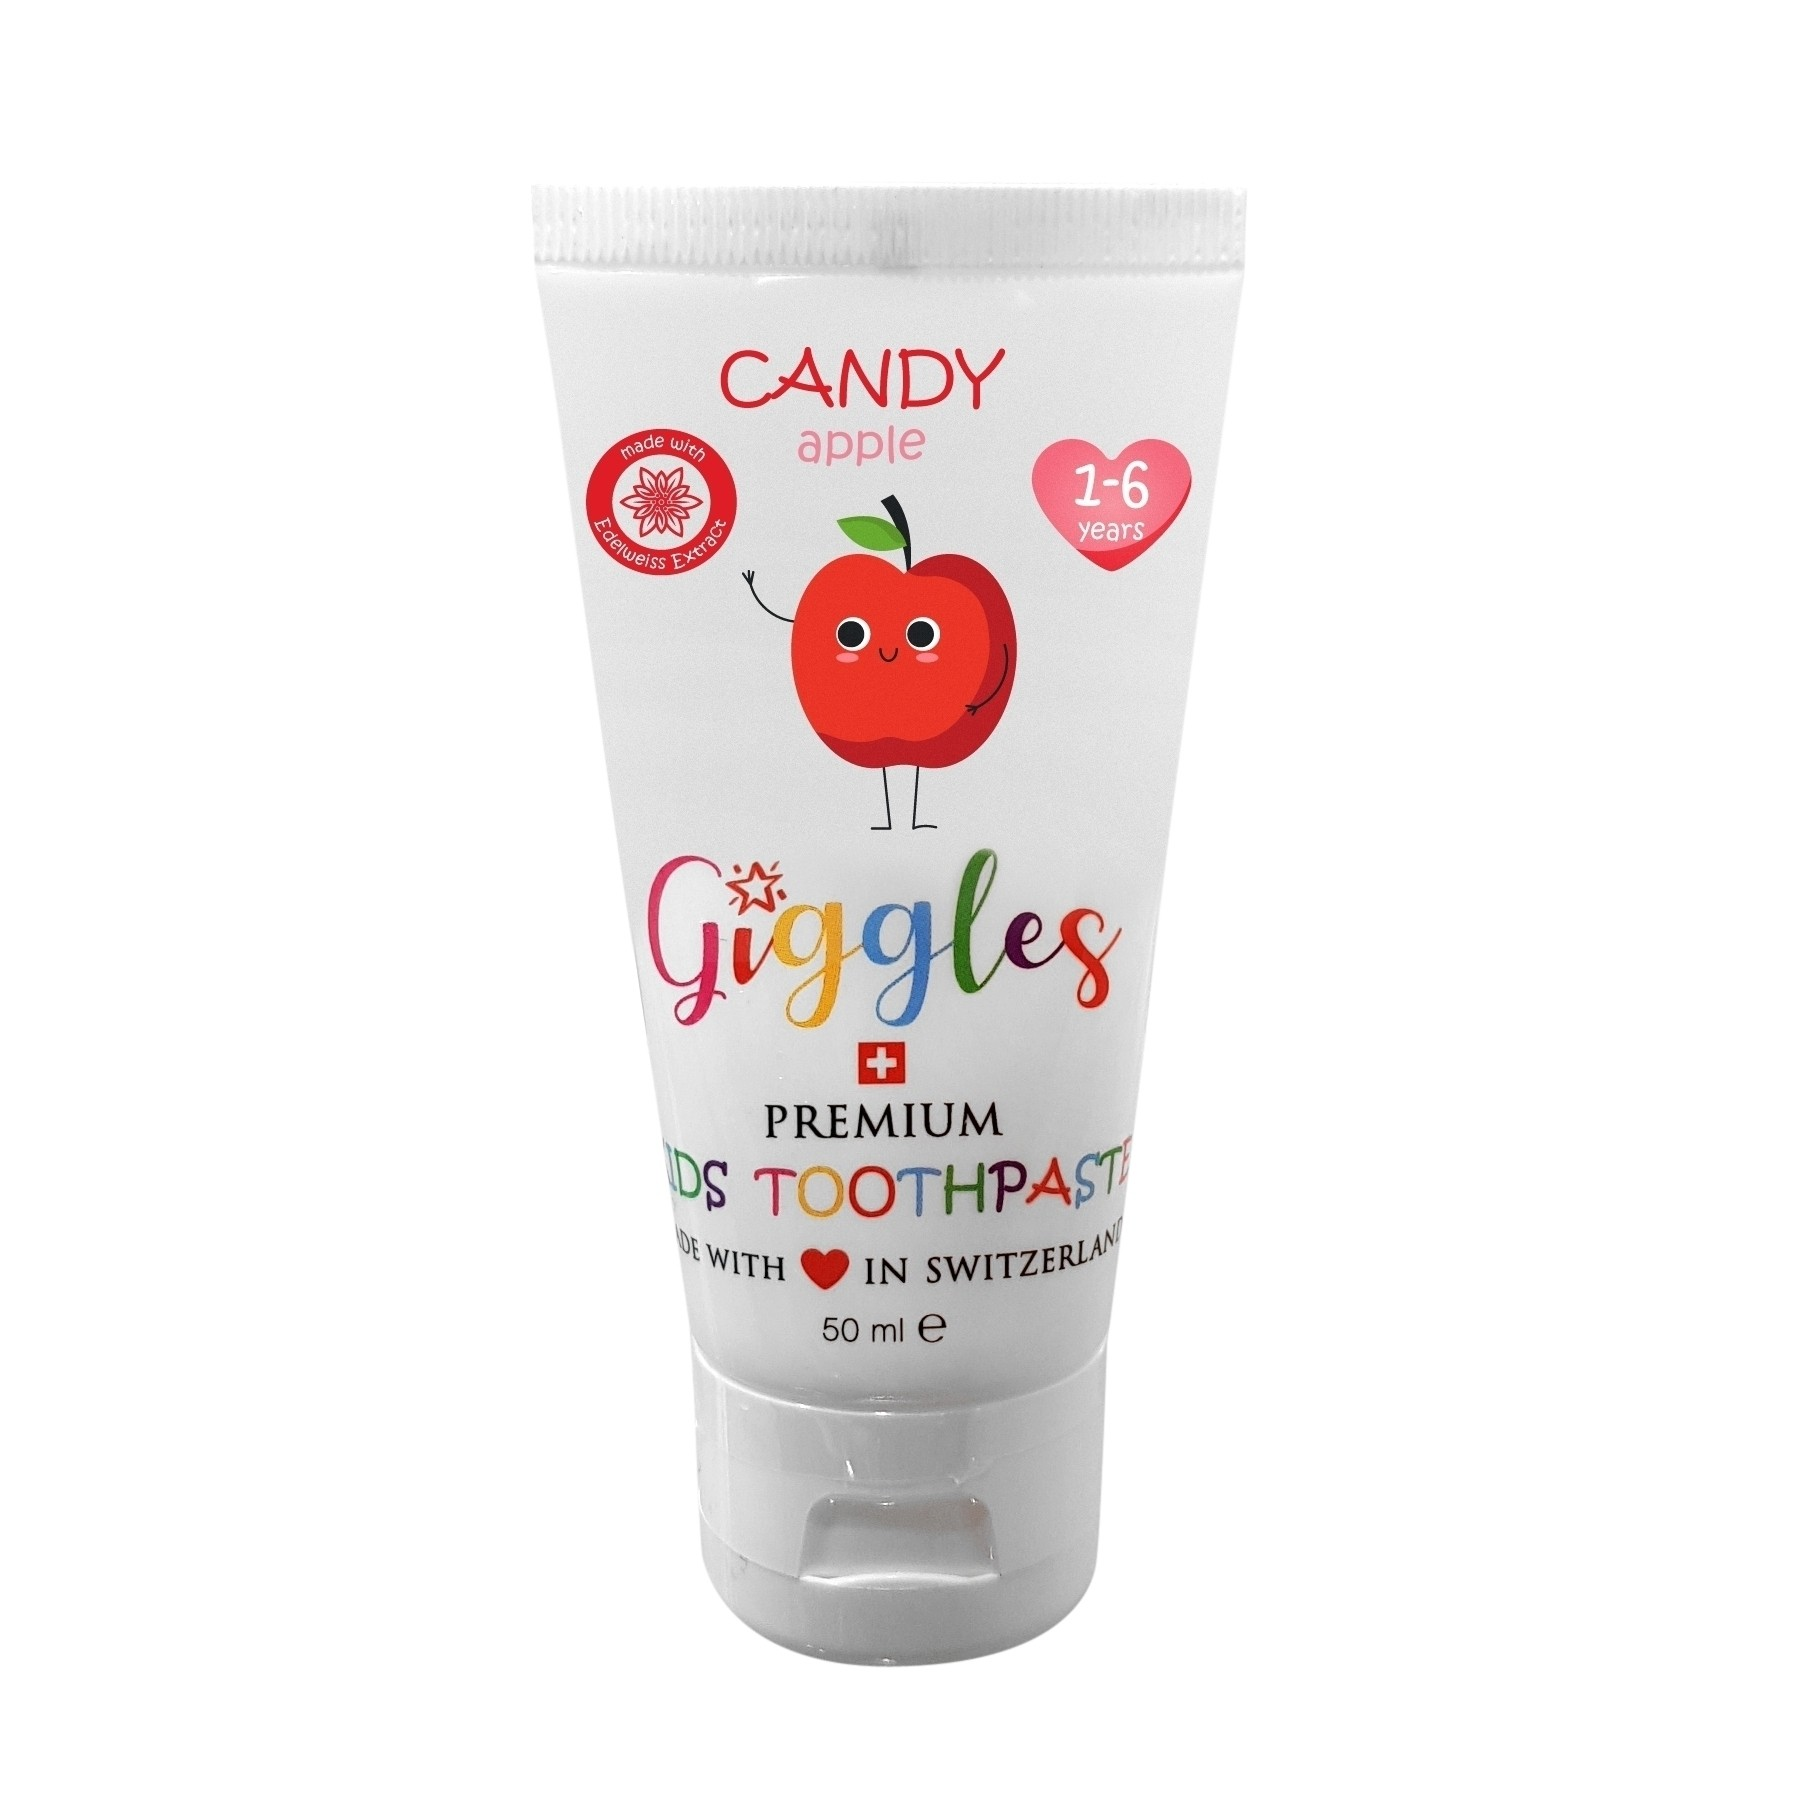 Giggles Toothpaste 50ml Candy Apple - 1-6yr